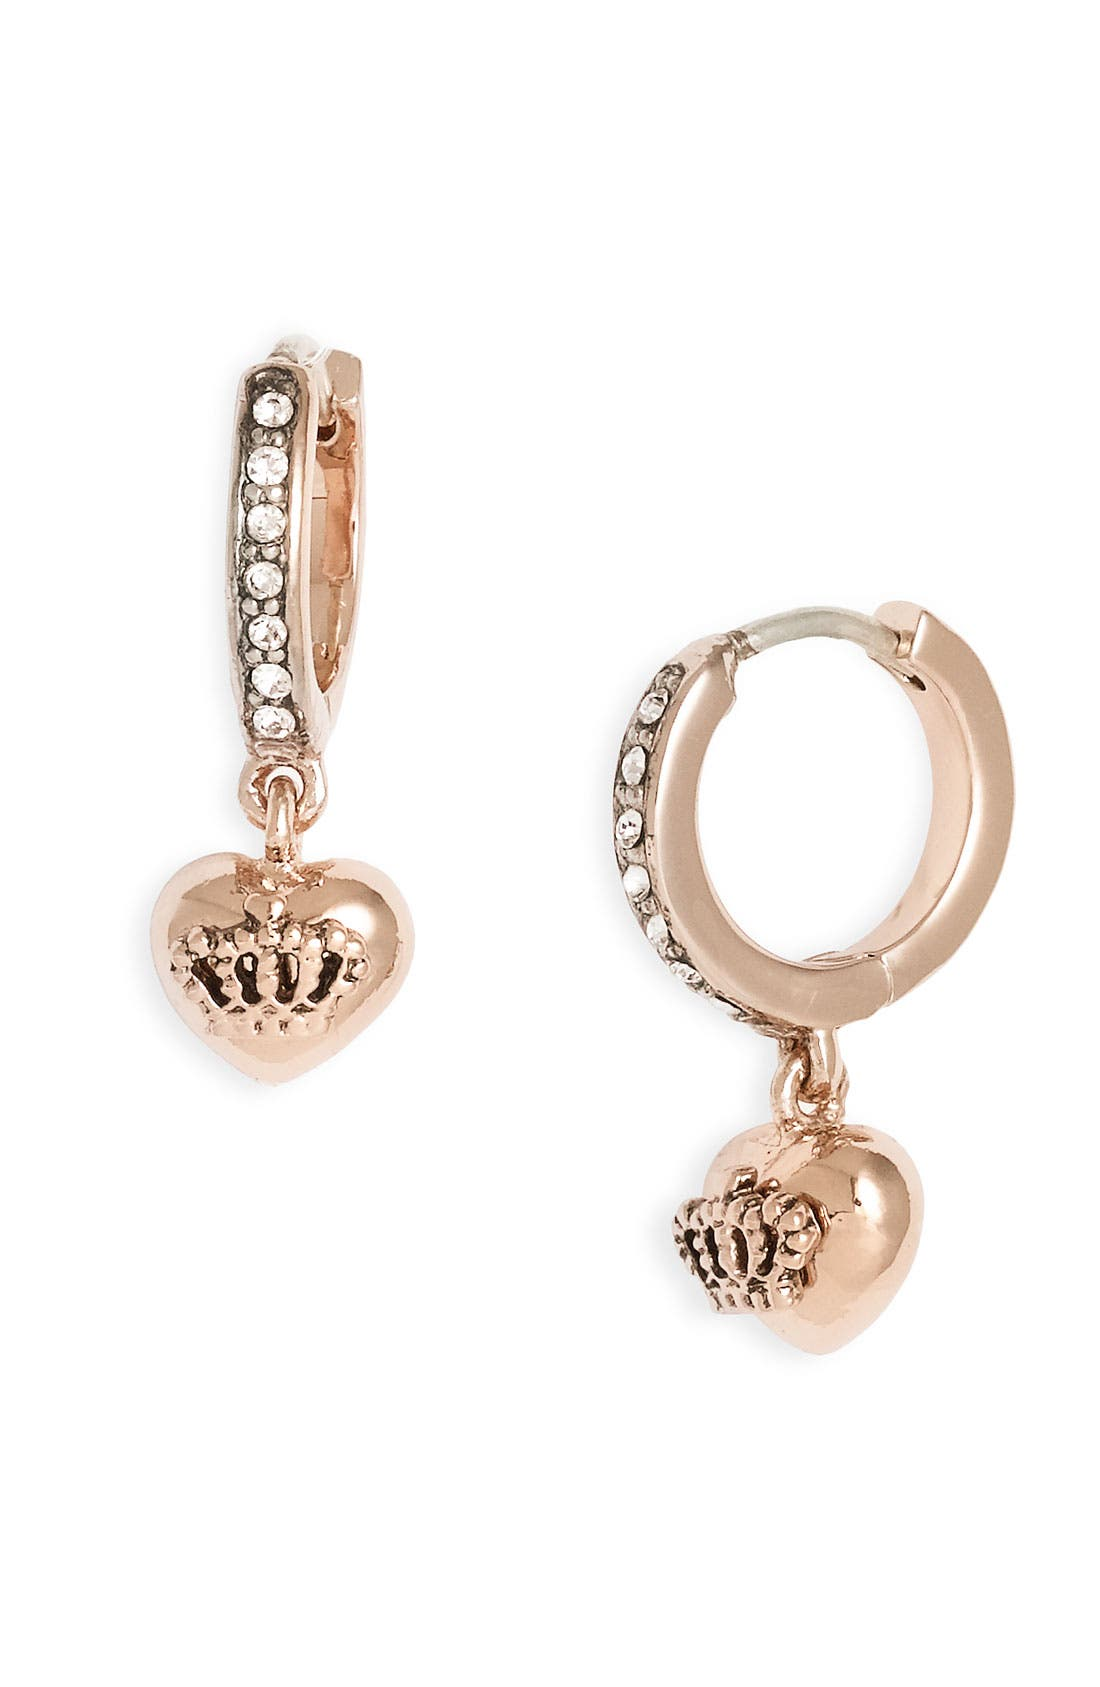 Main Image - Juicy Couture 'Crown Icons' Tiny Heart & Hoop Earrings